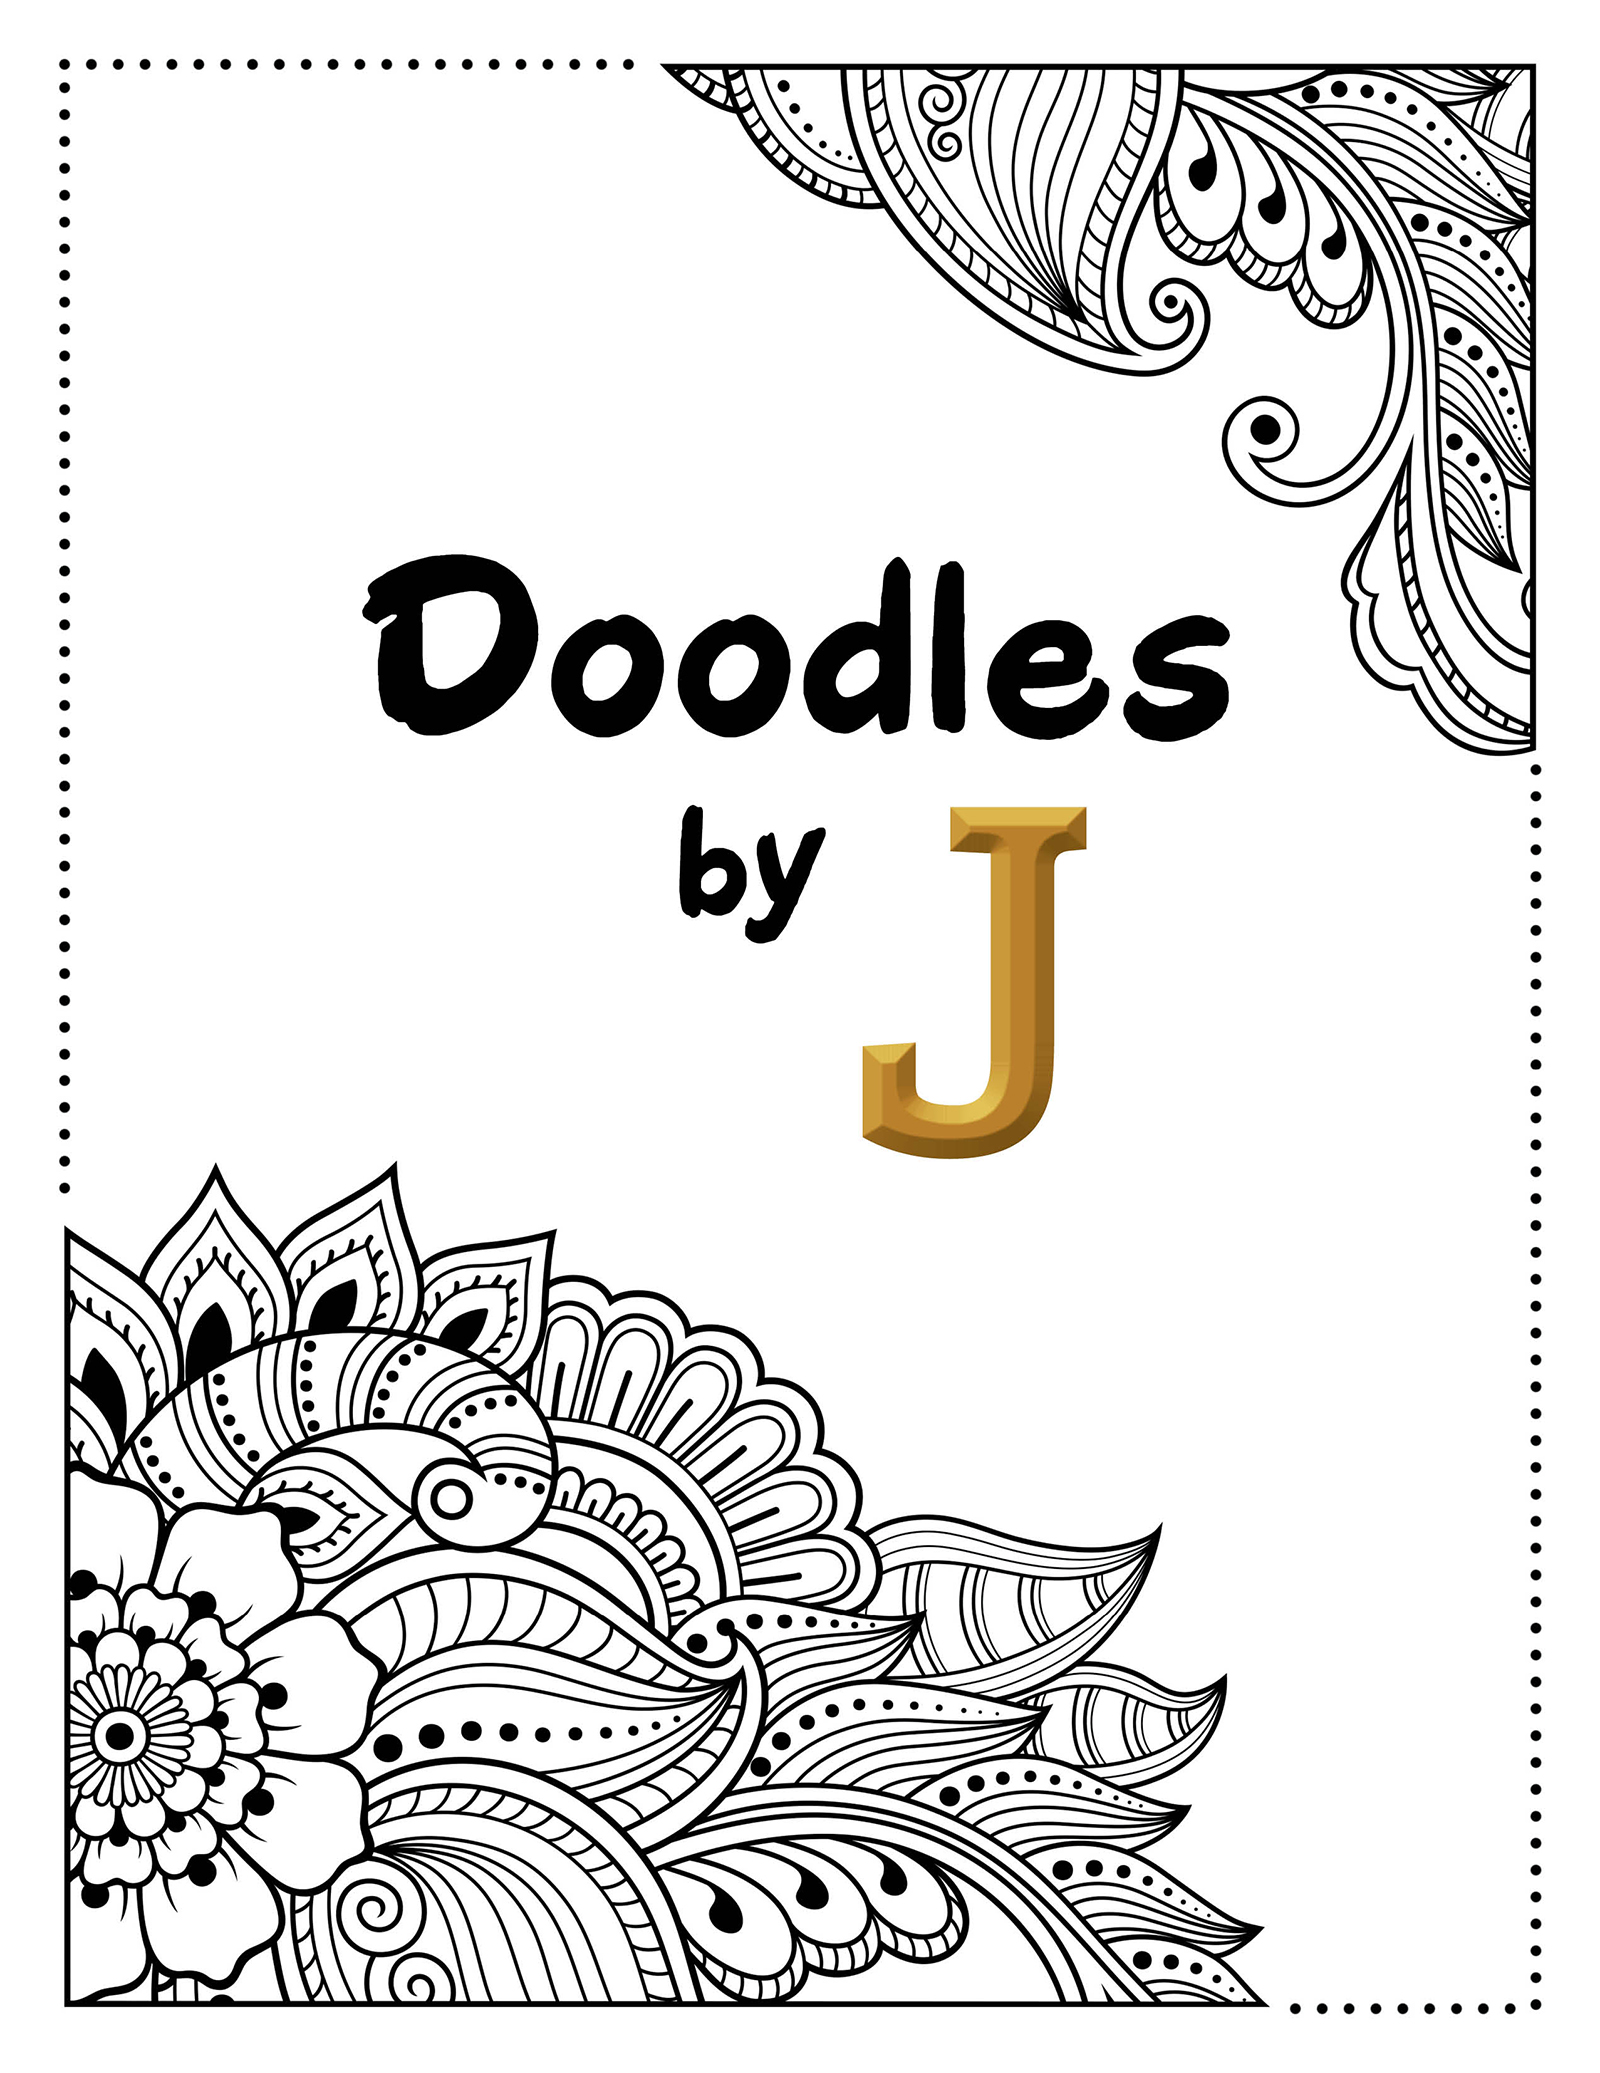 Doodle and color life in eccentric shades with 'Doodles by J'